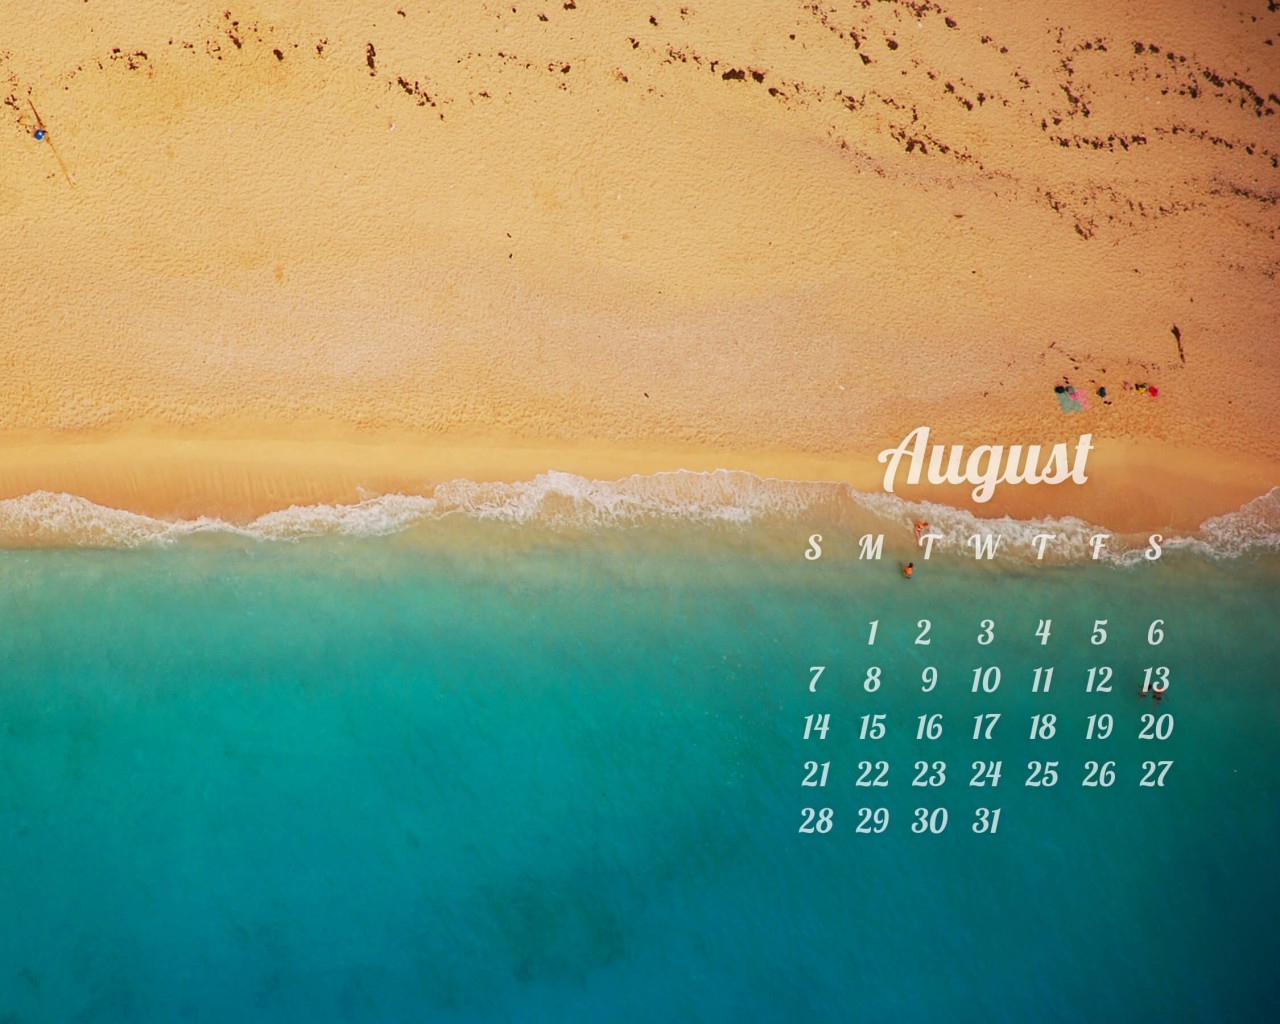 August 2016 Calendar Wallpaper for Desktop 1280x1024